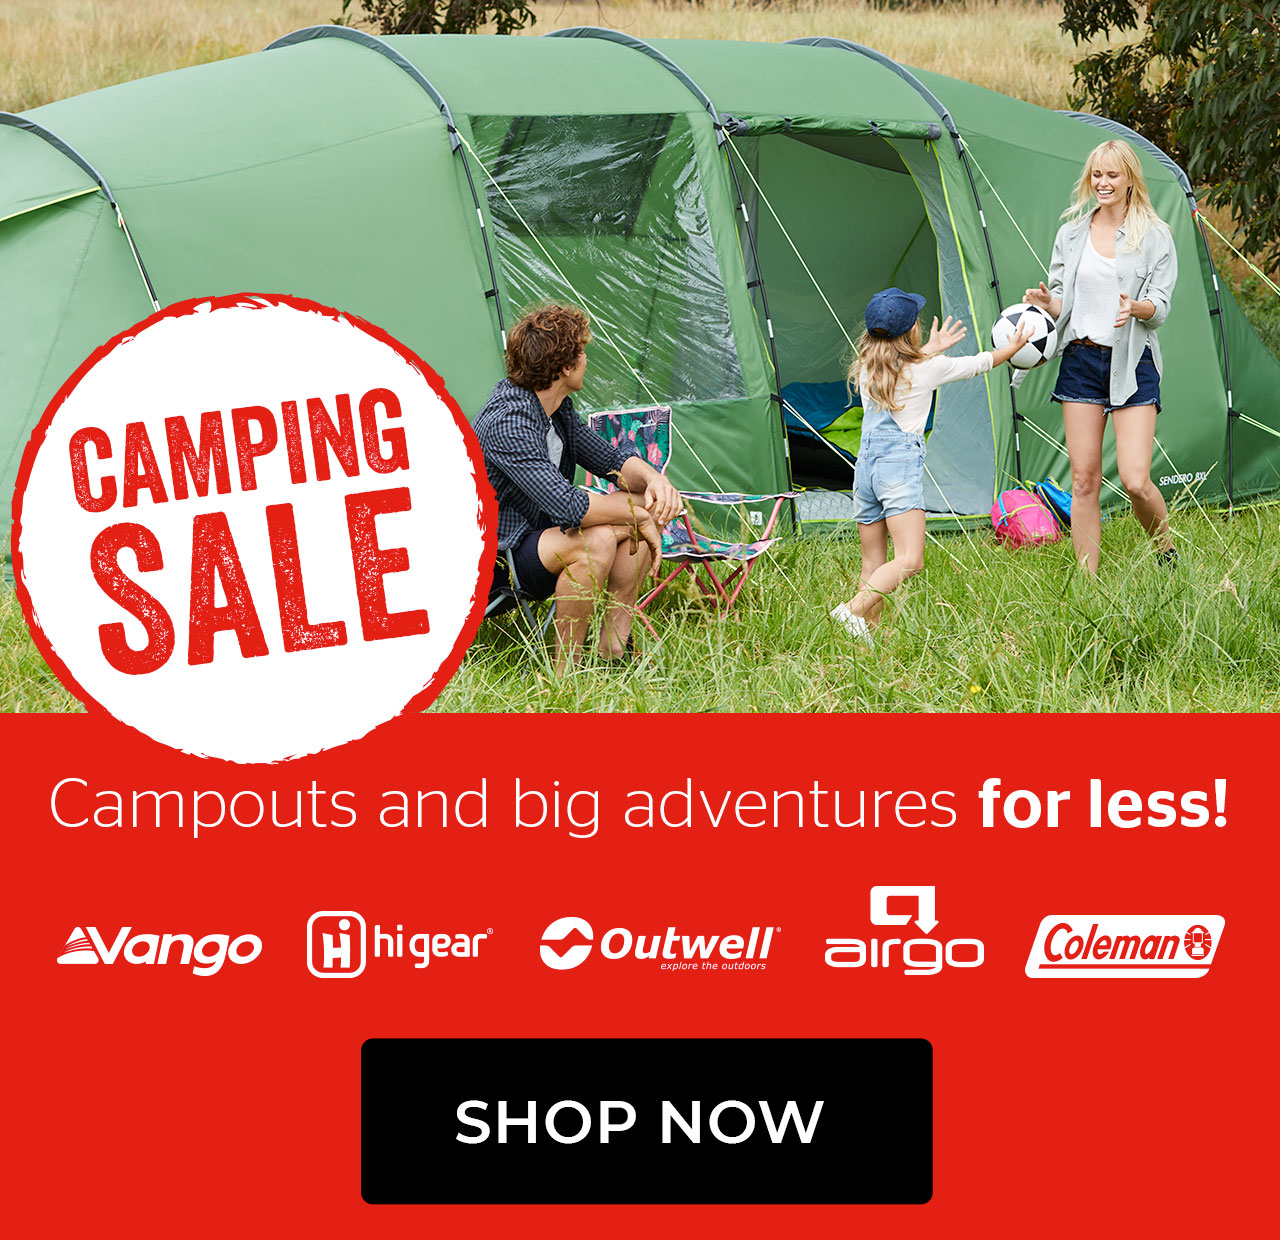 Camping sale - campouts and big adventures for less!